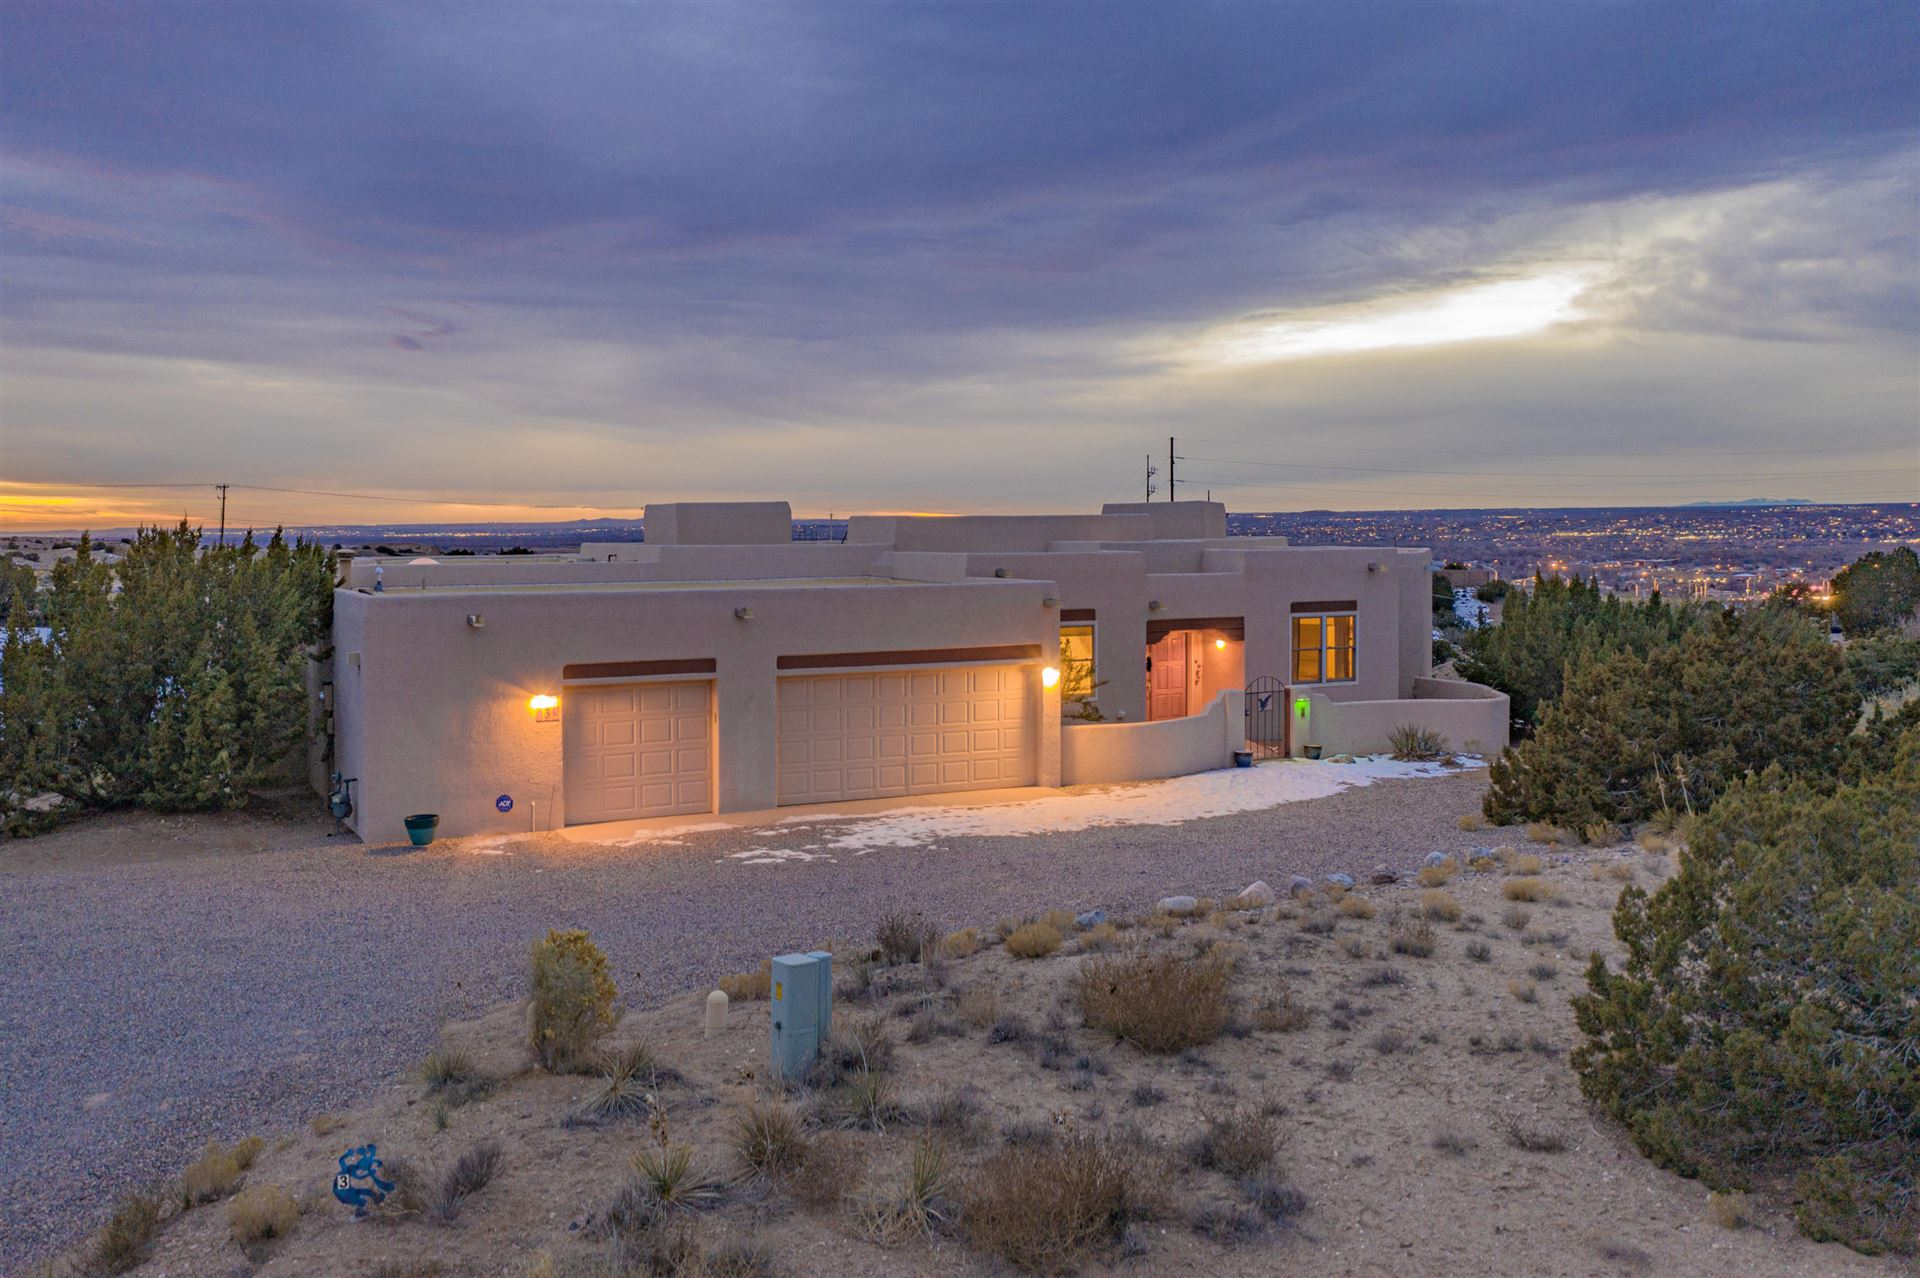 Photo of 3 MOON SHADOW Court, Placitas, NM 87043 (MLS # 980845)